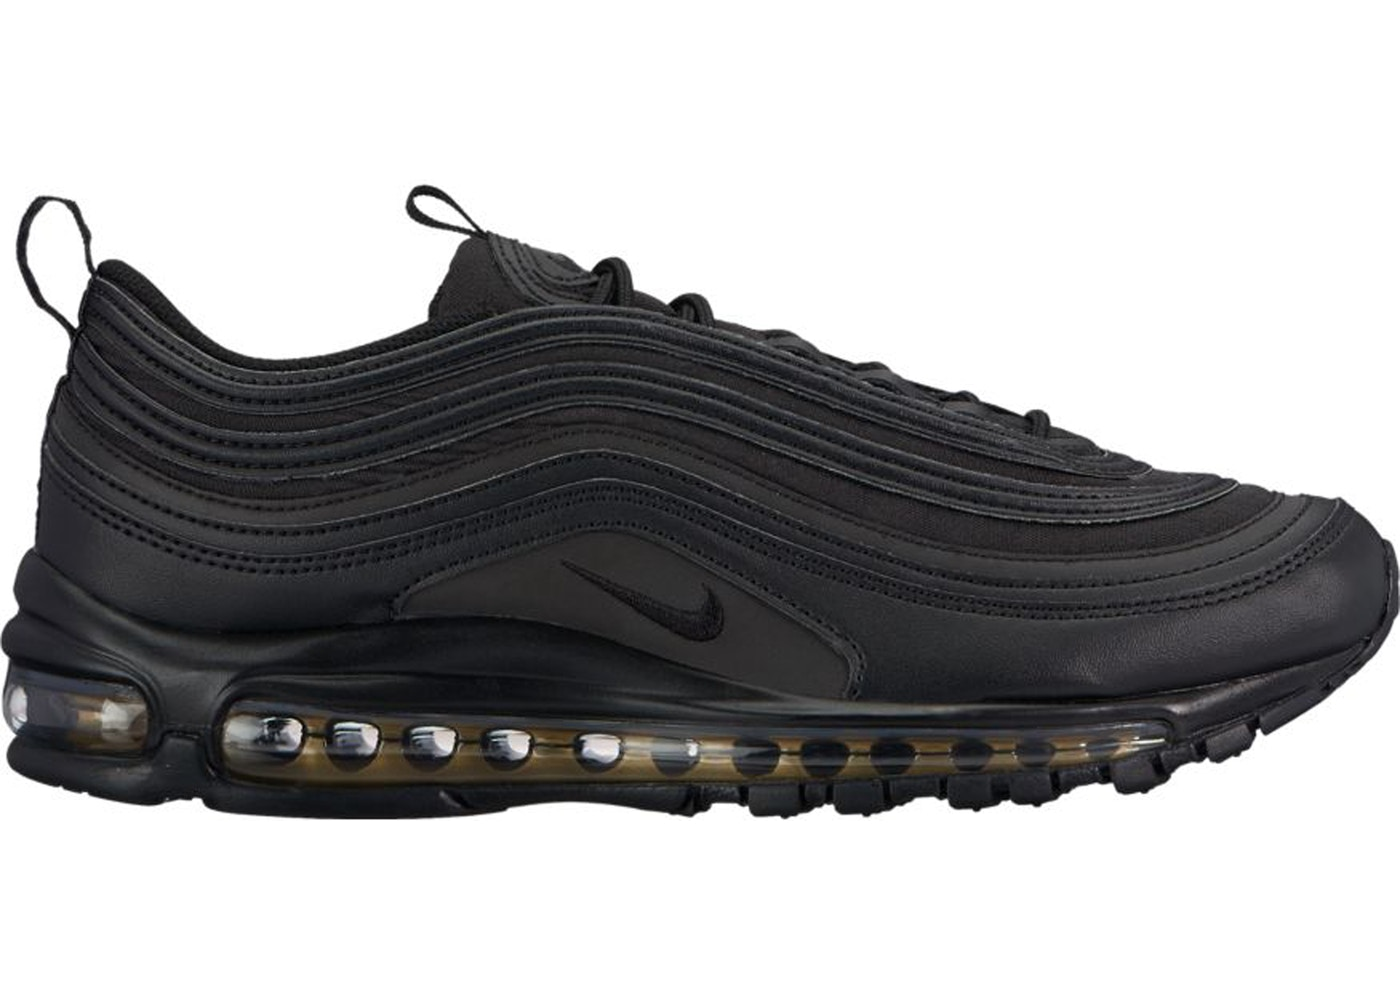 Air Max 97 Black Reflective Gold - AA3985-001 6444aeb34